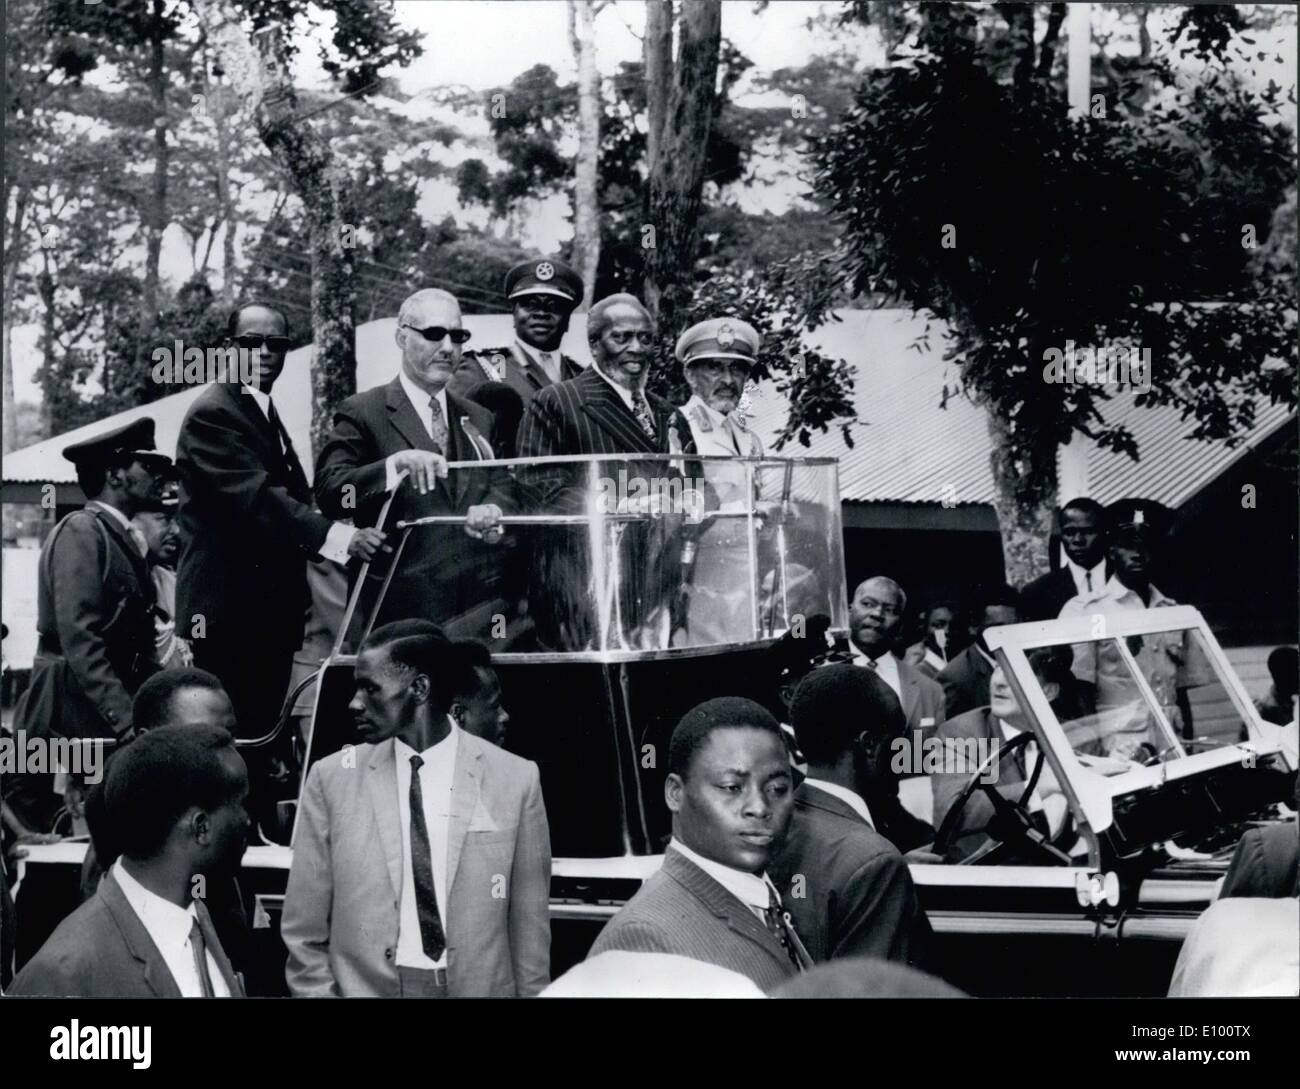 Feb. 02, 1972 - Nairobi, Kenya: Enclosed please find four pictures taken in Naironi Kenya yesterday when the 1st All Africa Trade Fair was Officially opened. The opening ceremony was attended by many thousand people including the Emperor of Ethiopia, Haile Selassie, President Idi Amin of Uganda, President Moktar Ould Daddah of Mauritanis and President Kenyatta of Kenya. Photo shows 1. The Four Heads of States in a ceremonial landrover tour the fair grounds in the landrover are from left Mr - Stock Image